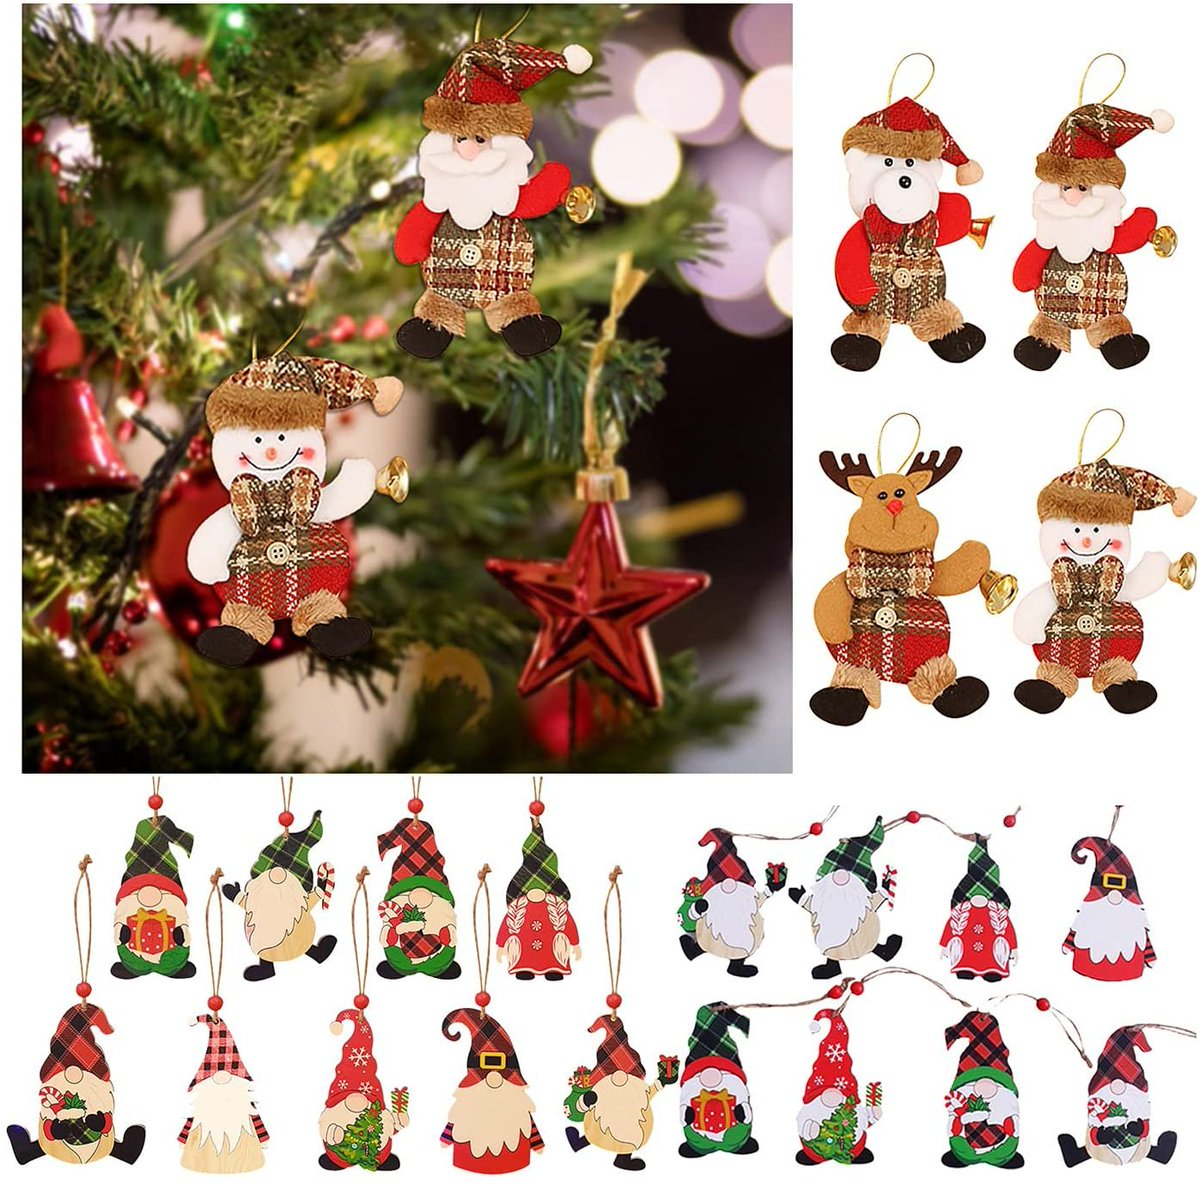 Christmas Wooden Gnome Ornaments Hanging Decoration  Only $1.98!!  Use Promo Code SCGLBXYQ